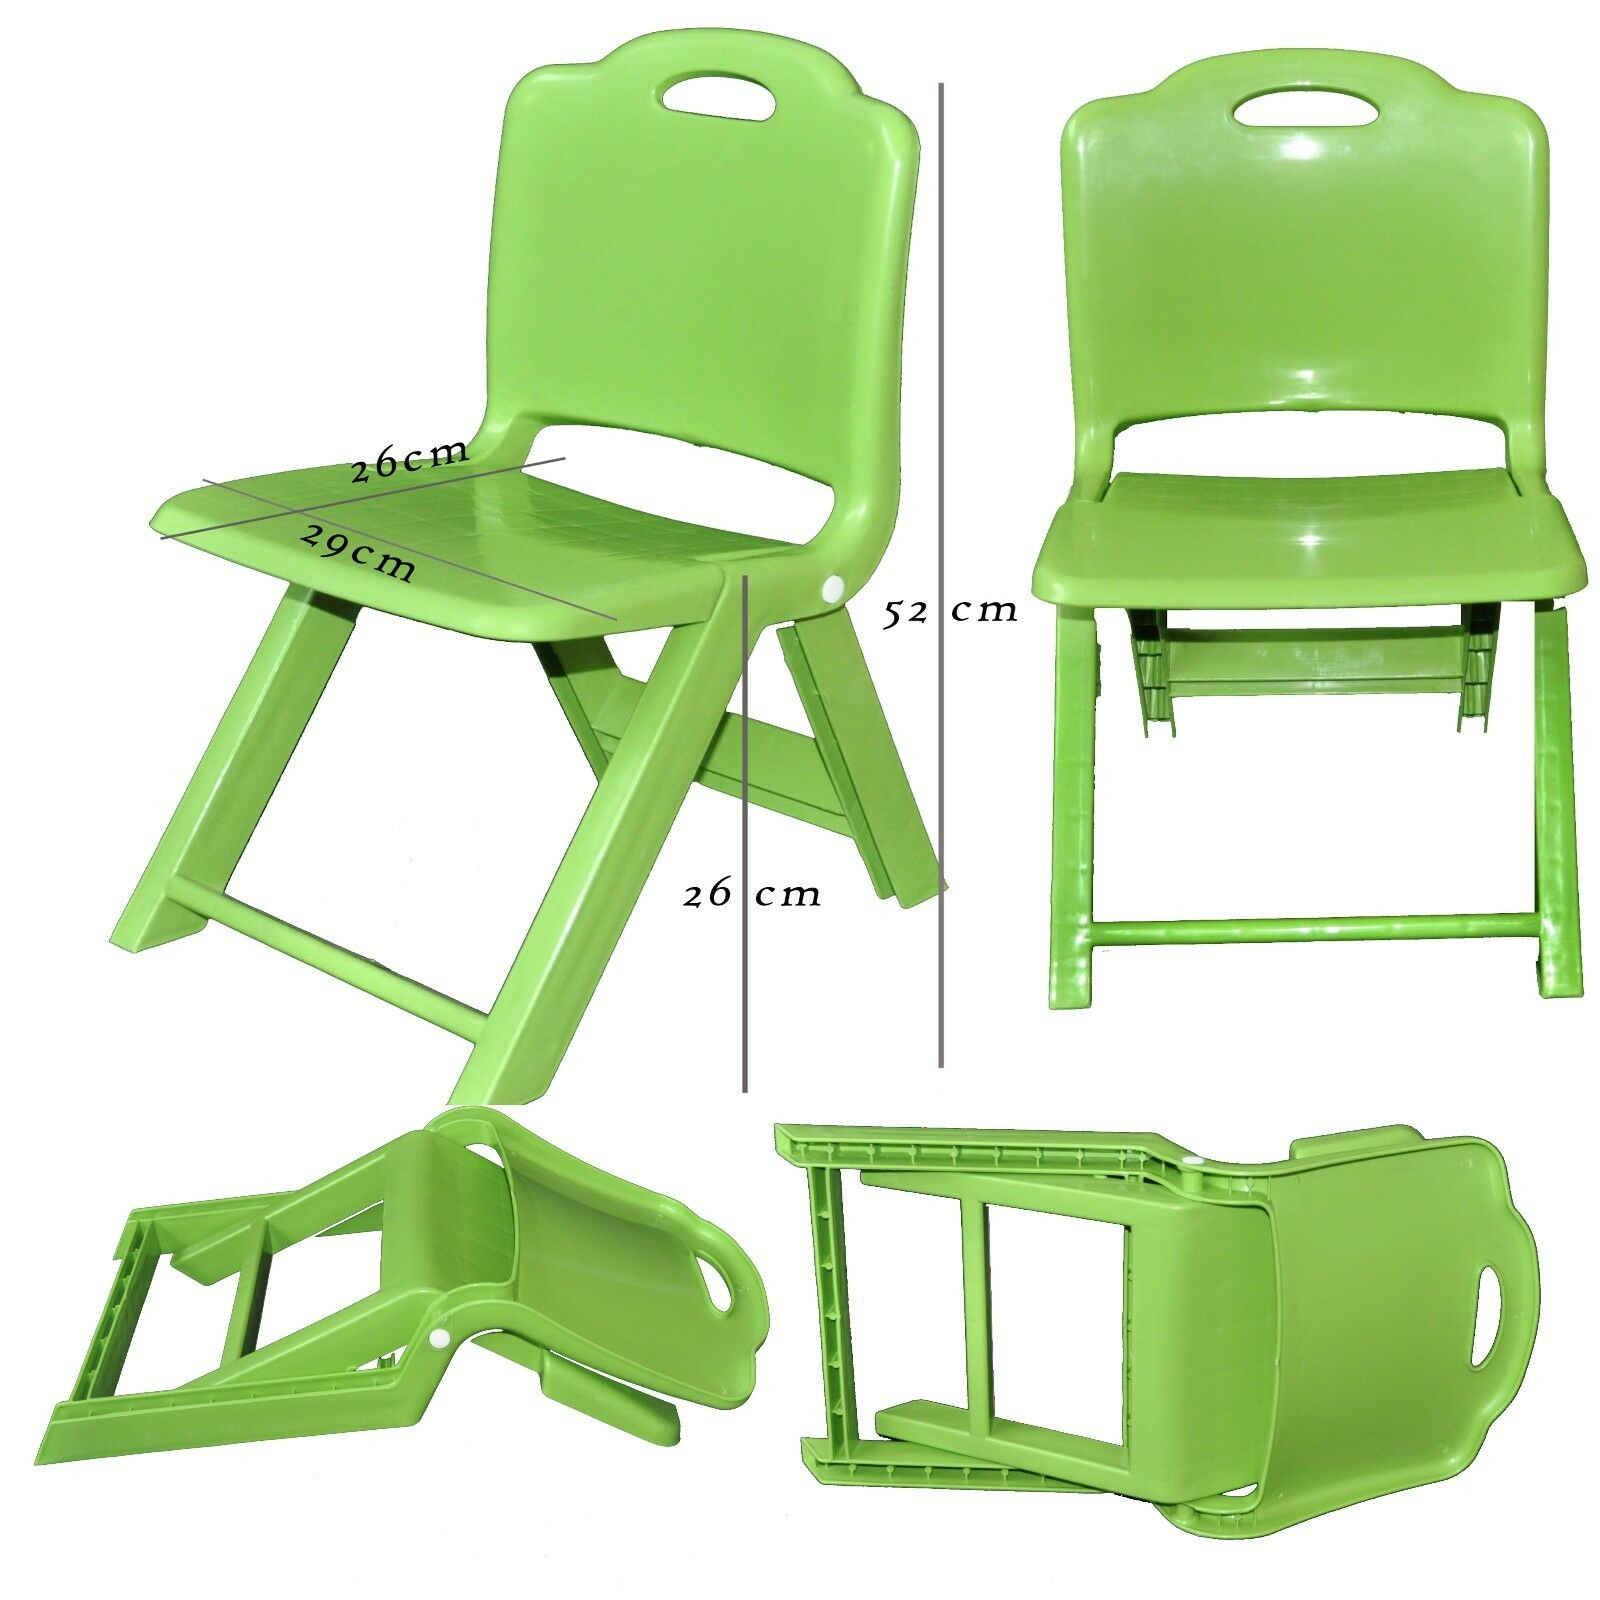 bin bags chairs french desk chair strong kids children plastic folding home picnic